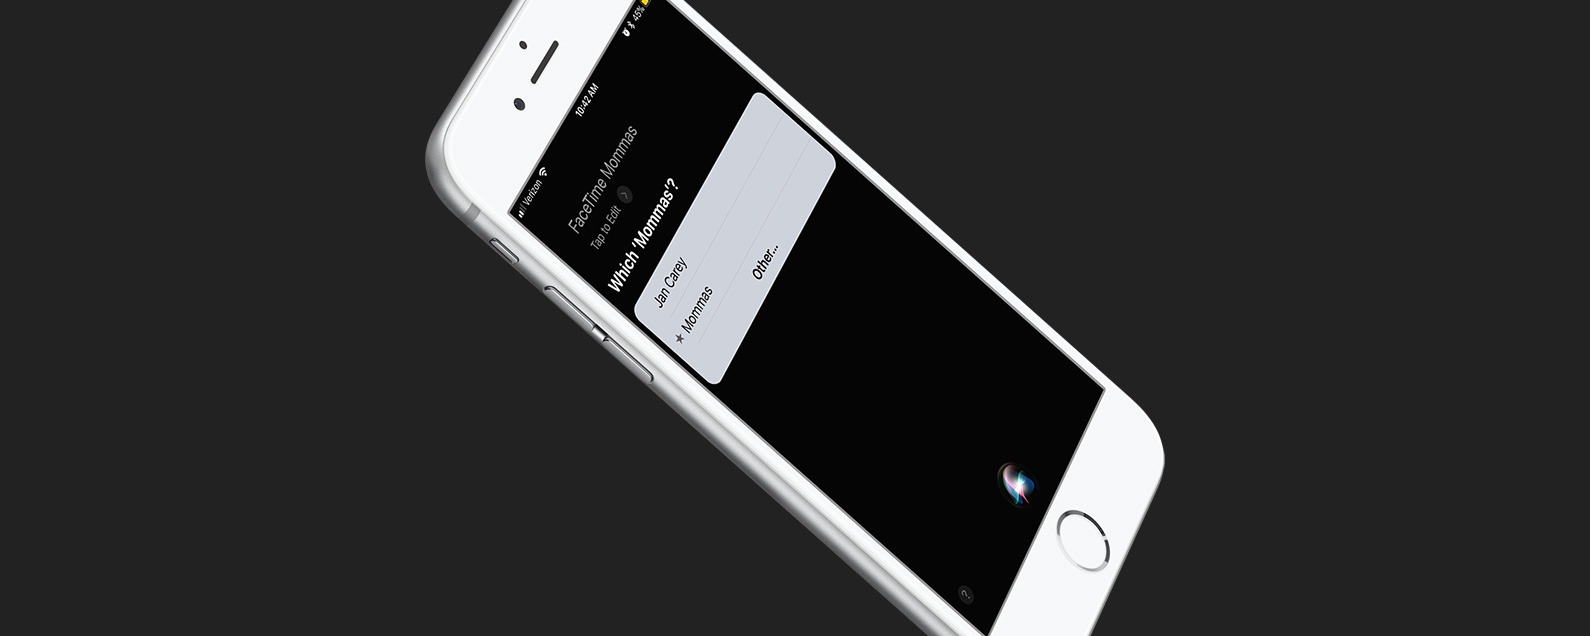 How to Make FaceTime Calls with Siri on iPhone